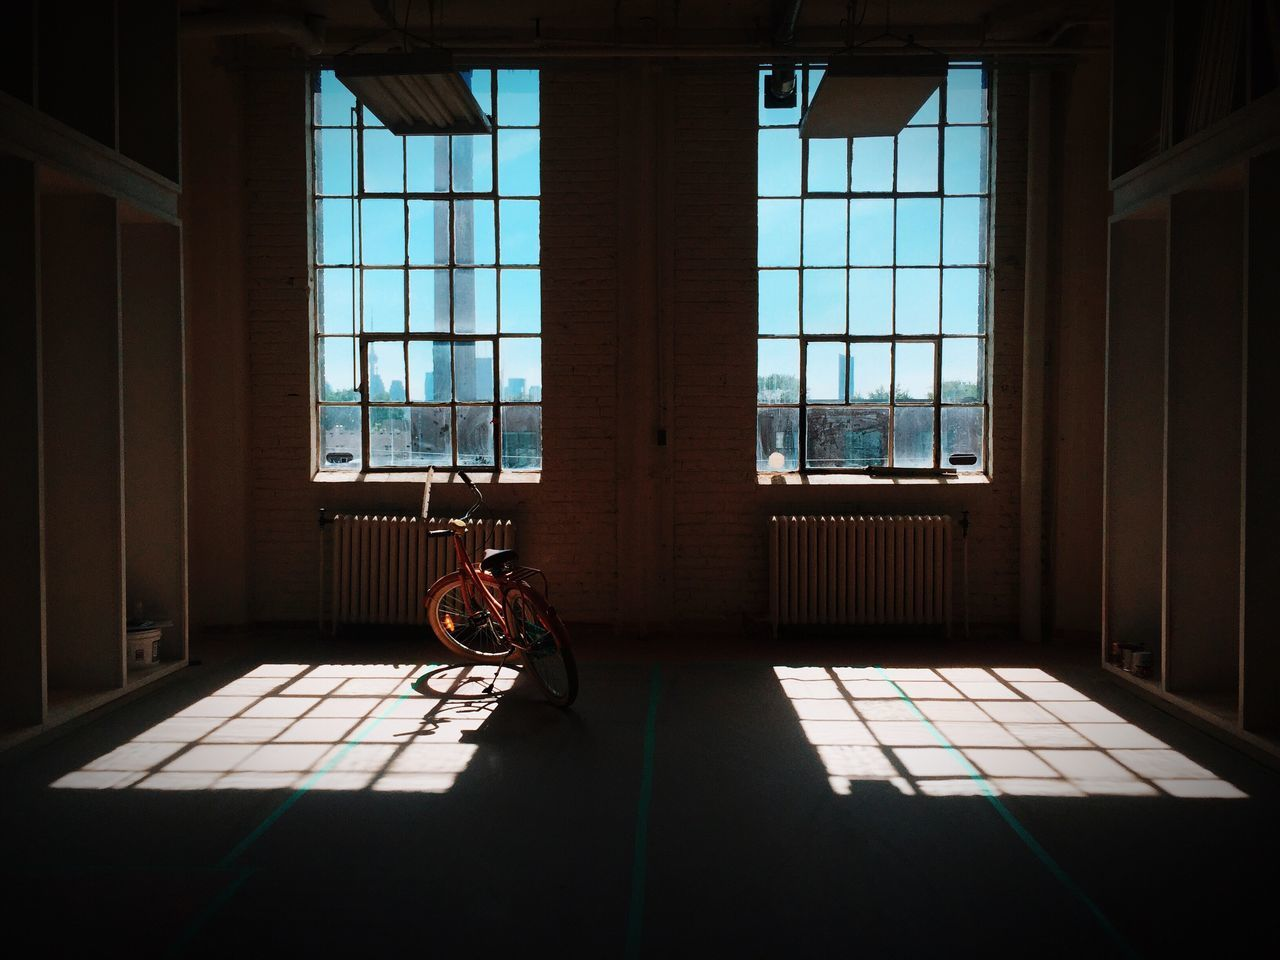 Two Is Better Than One Shadow Light Windows Loft Grid Renovation Bicycle Sunlight Empty Poetry Interior Architecture Toronto Open Edit View Interior Design Shelves Ceiling Pipes Grids Shadows & Lights Interior Views Construction Renovations